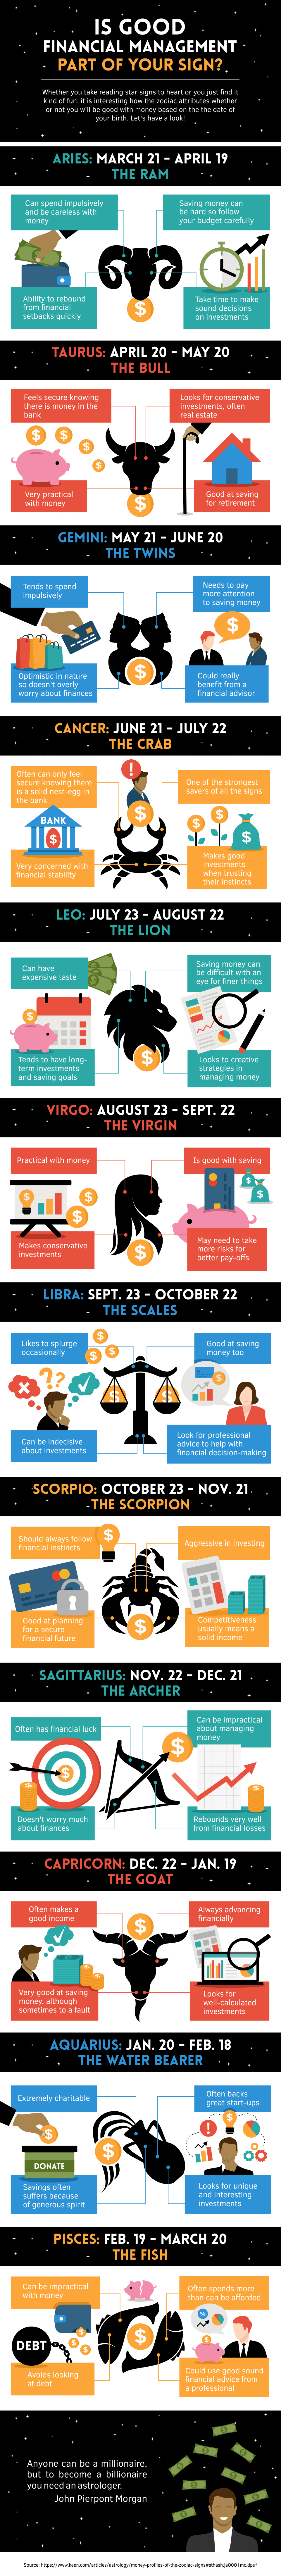 Launch full infographic: Horoscope Sign and Money: Aries